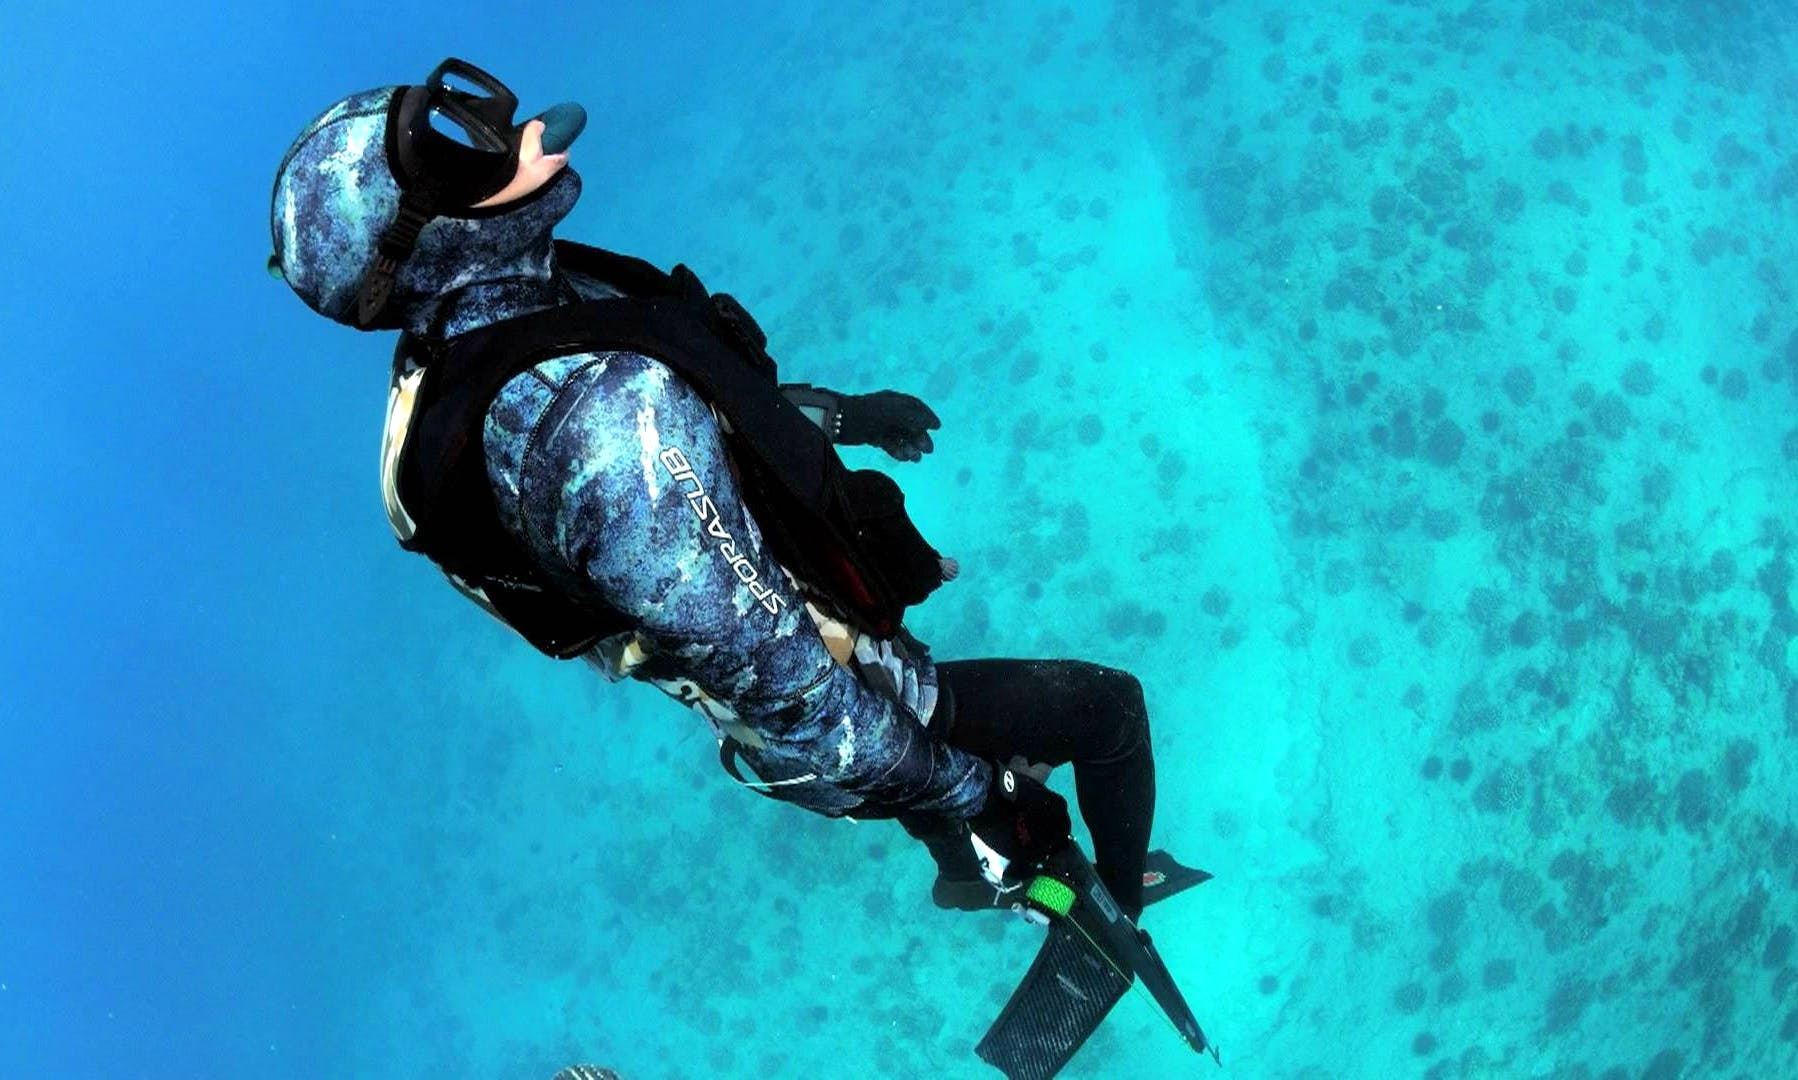 Free Diving Course aboard 8 People Dive Boat in Eilat, Israel